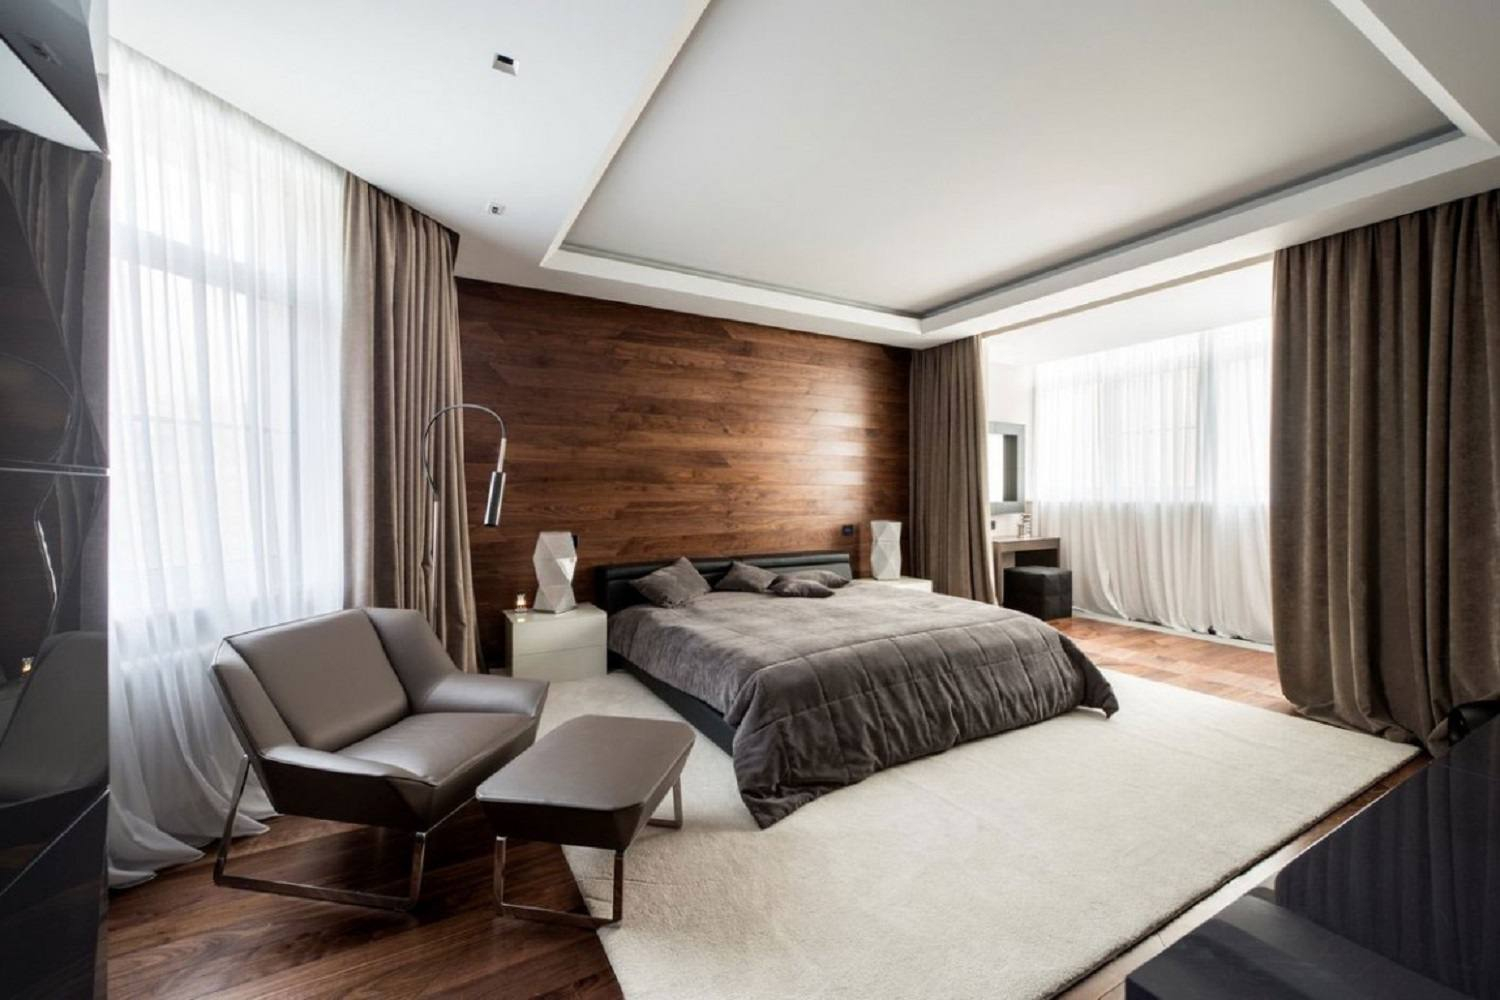 25 Tips And Photos For Decorating A Modern Master Bedroom inside 15 Some of the Coolest Ways How to Craft Bedrooms Modern